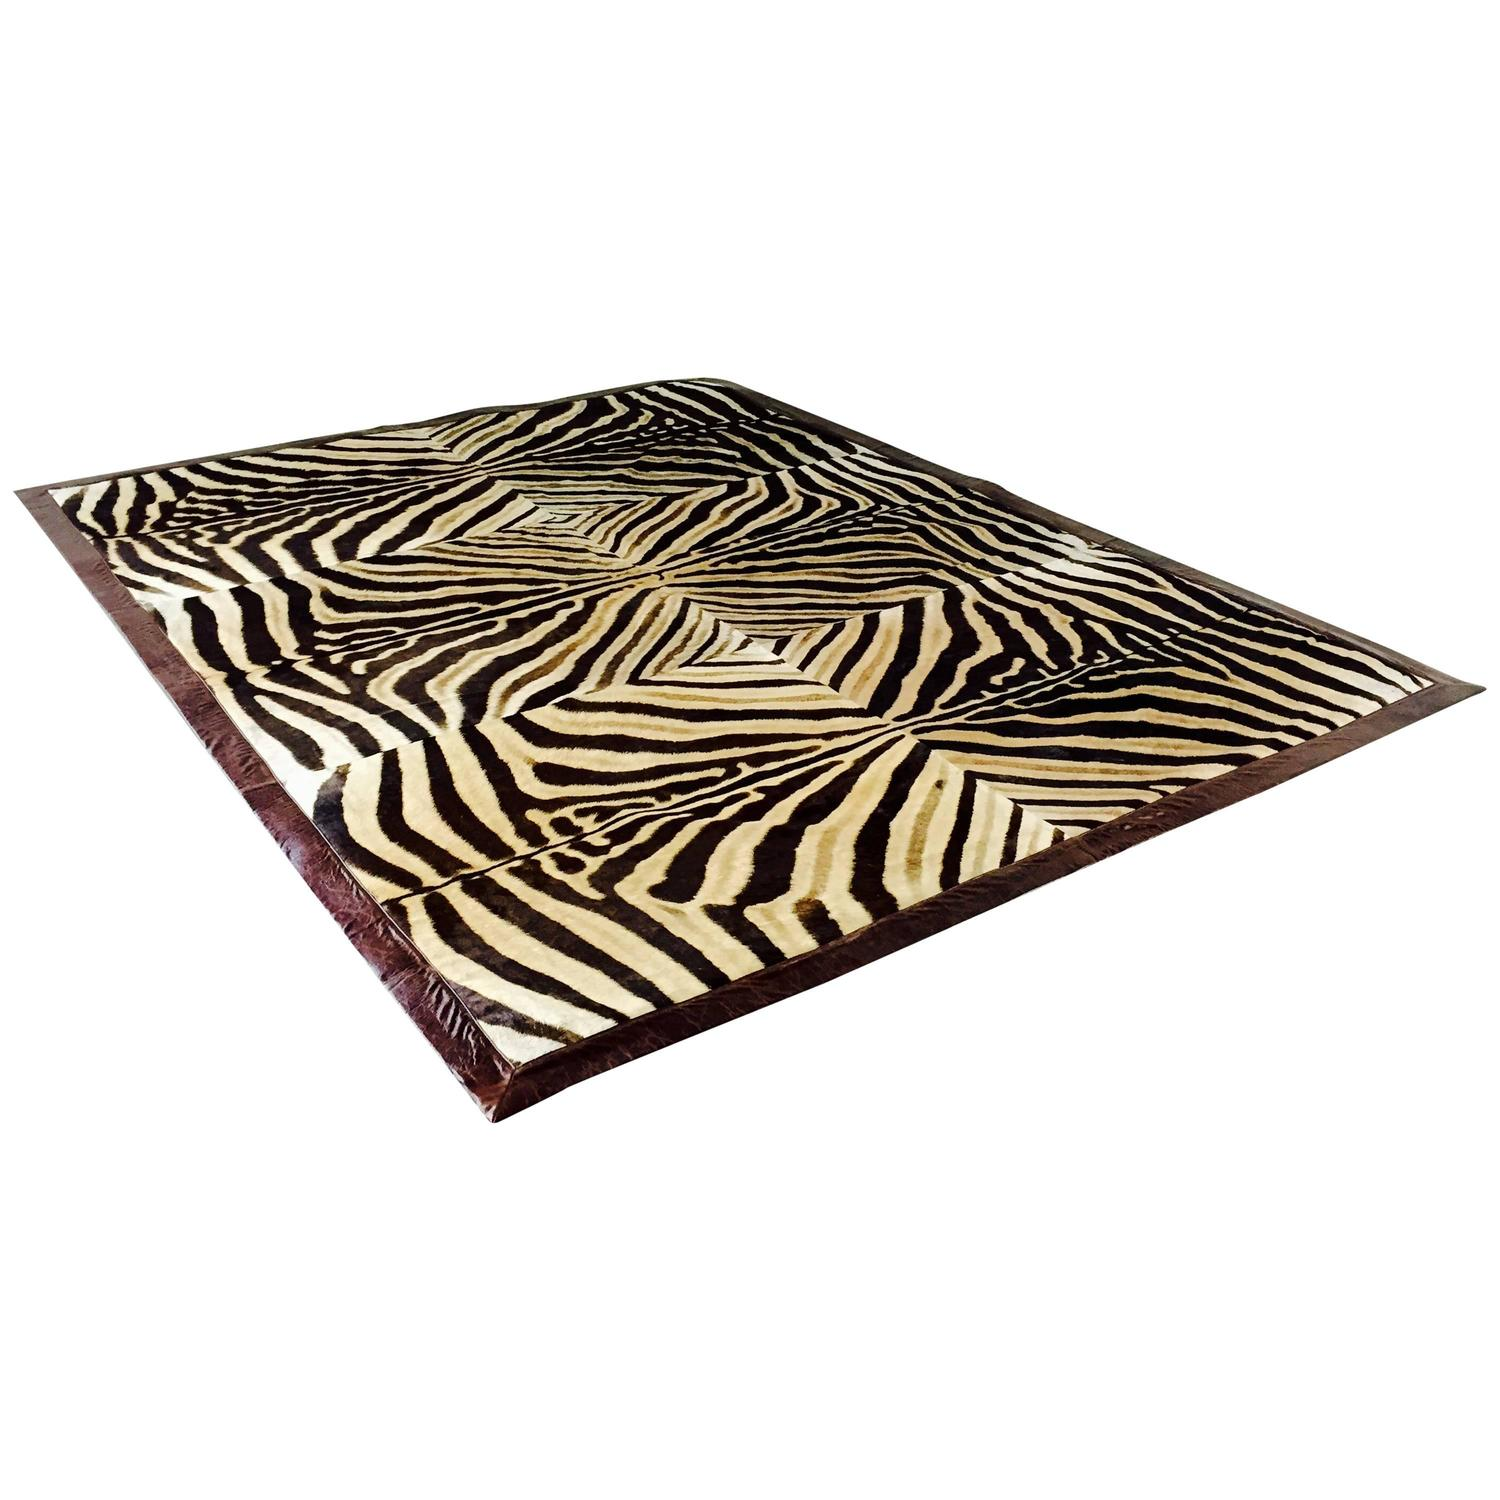 Zebra Rug Handcrafted From Six Zebra Sides For Sale At